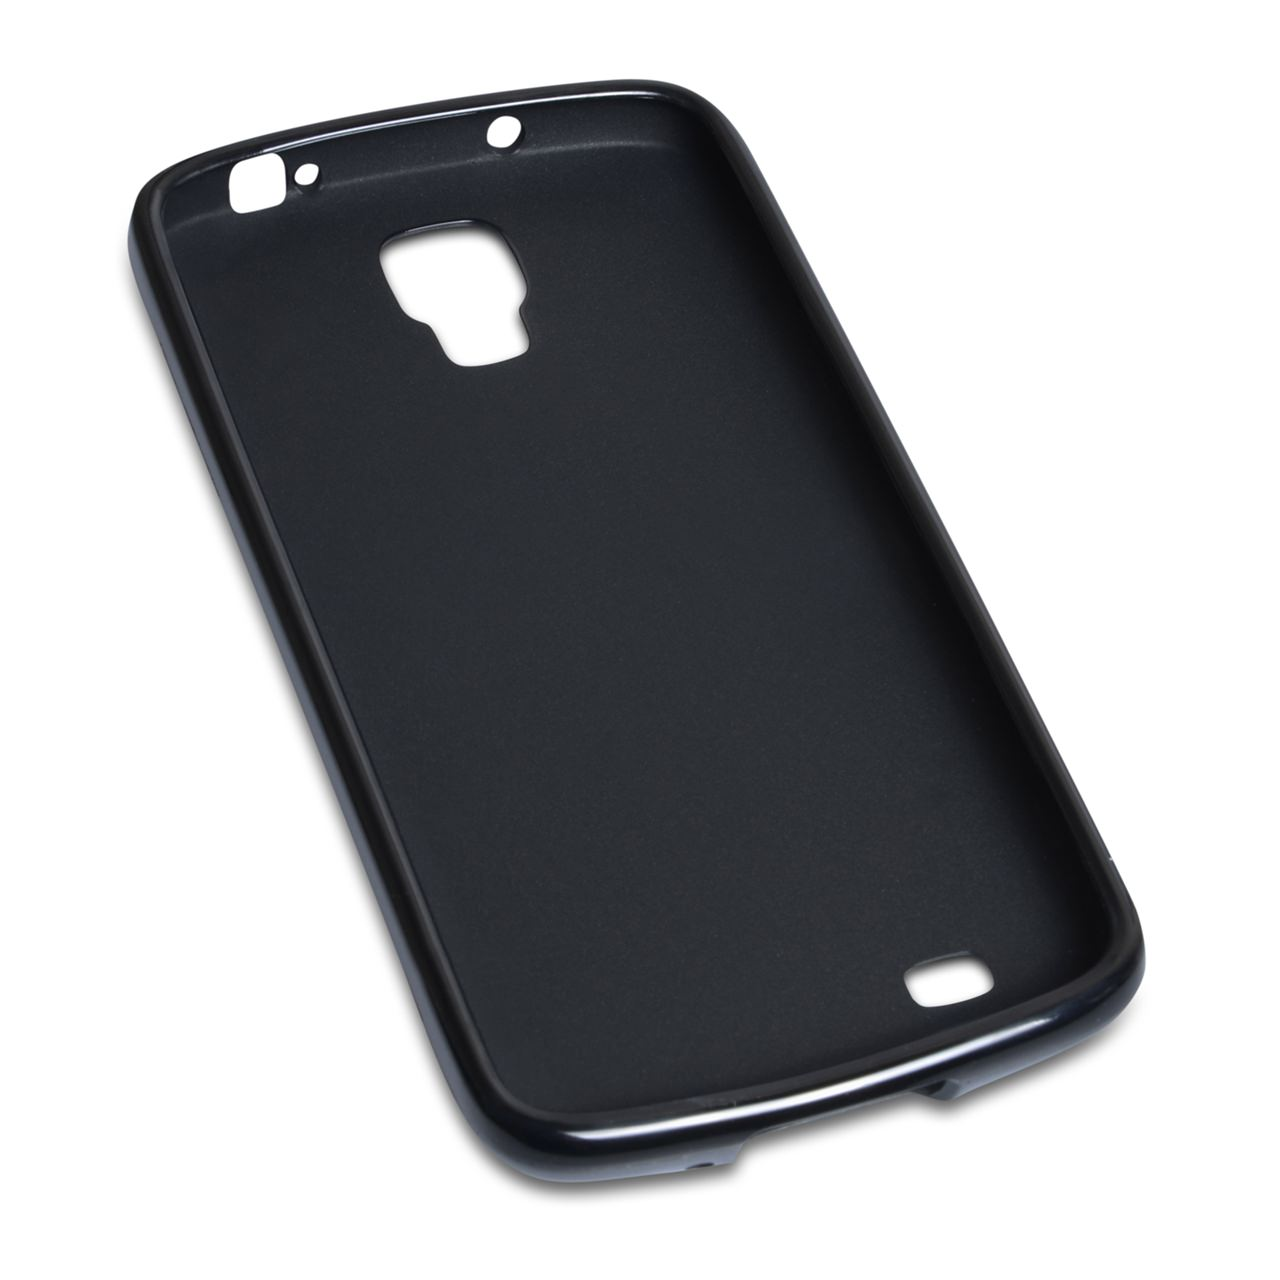 YouSave Accessories Samsung Galaxy S4 Active Gel Case - Black